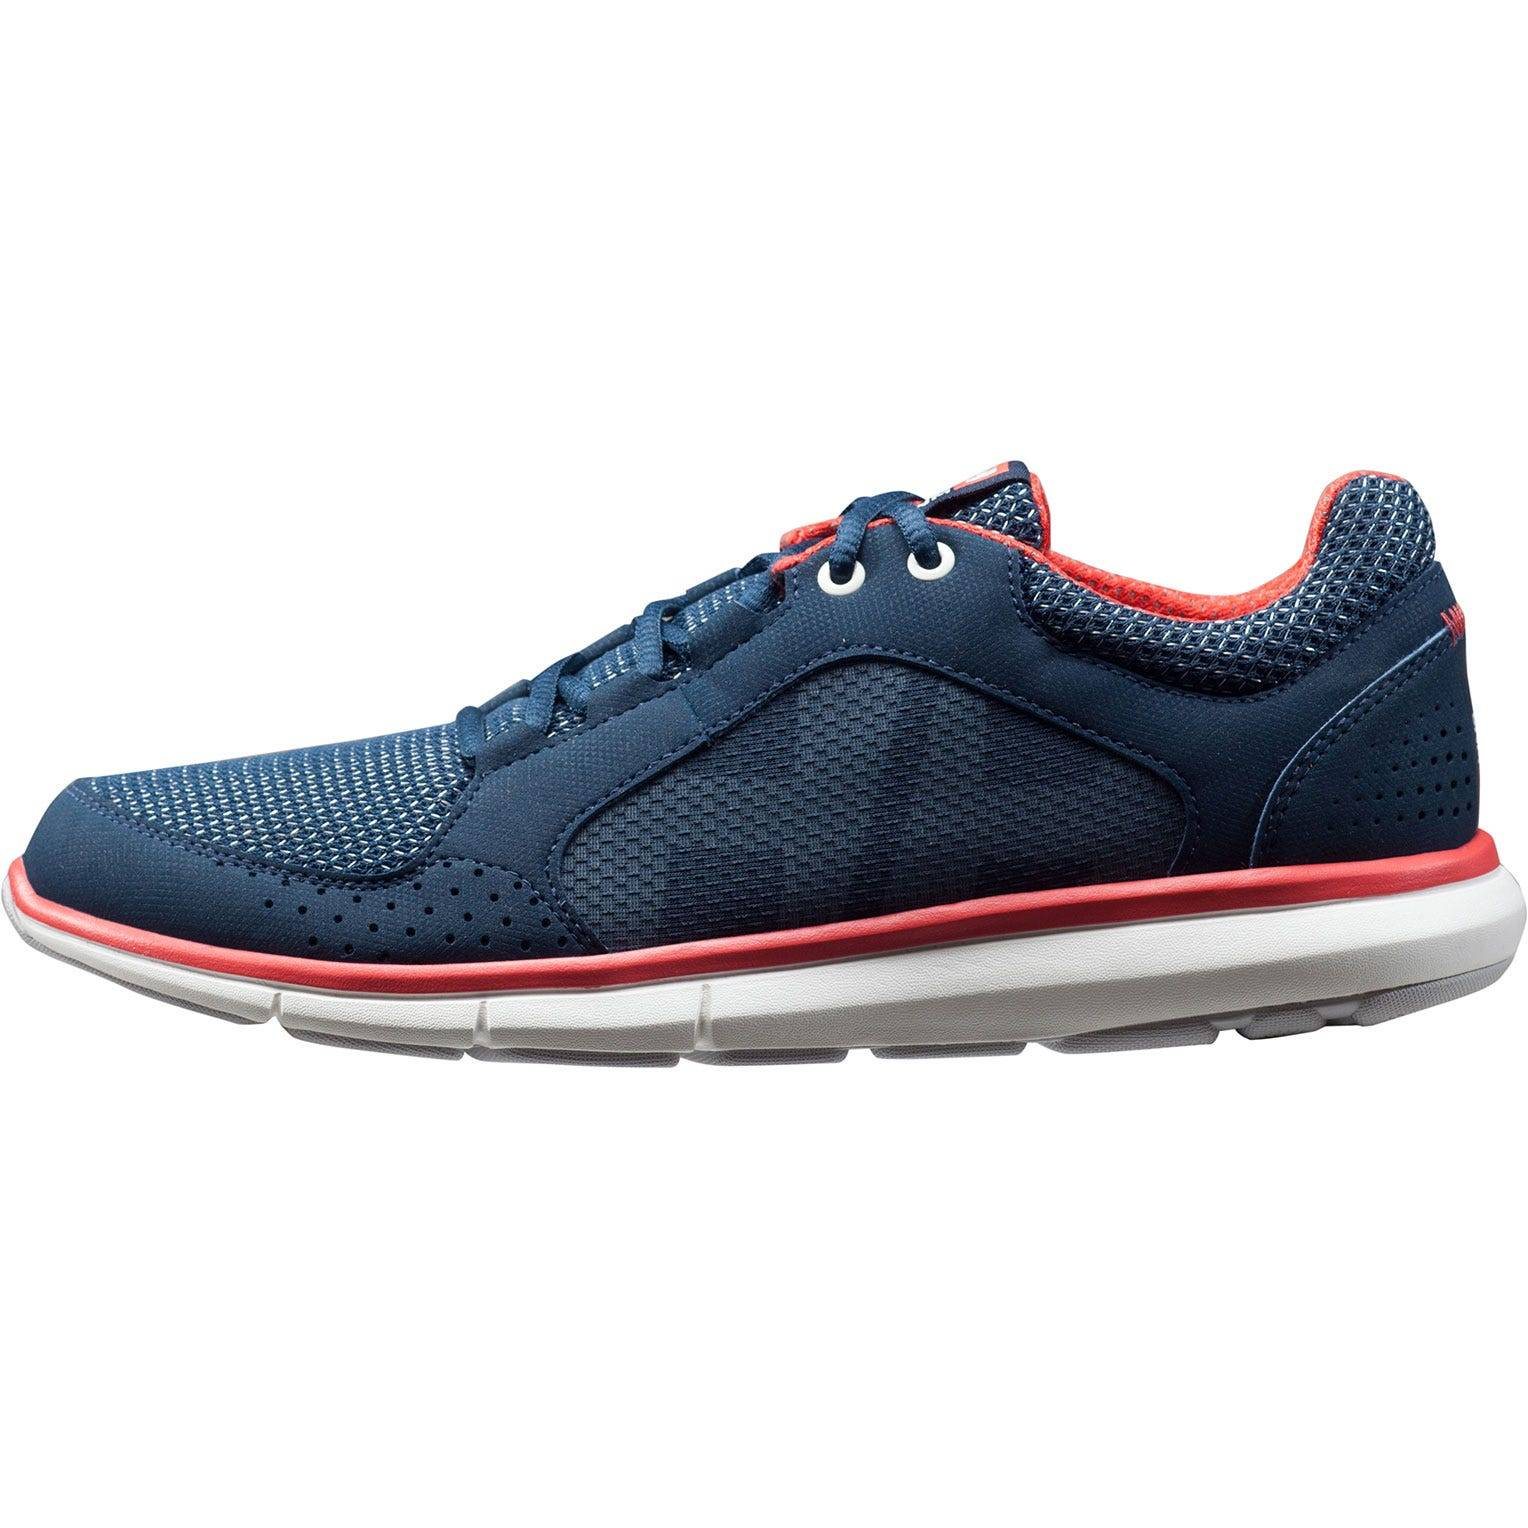 Helly Hansen W Ahiga V3 Hydropower Womens Sailing Shoe Navy 37/6